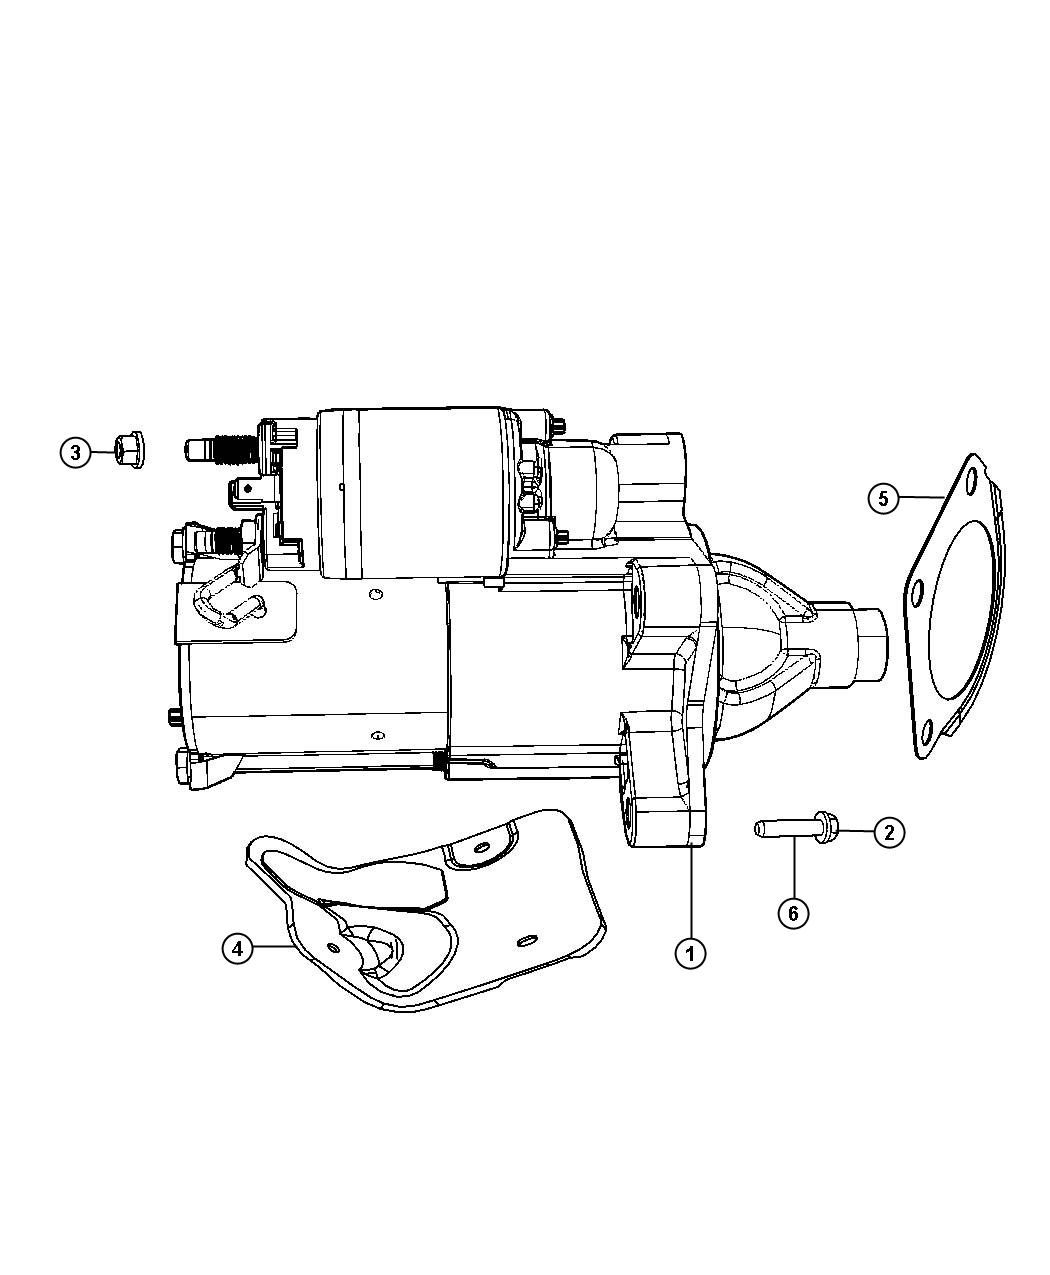 2011 Wrangler Engine Diagram. 2011 jeep wrangler wiring